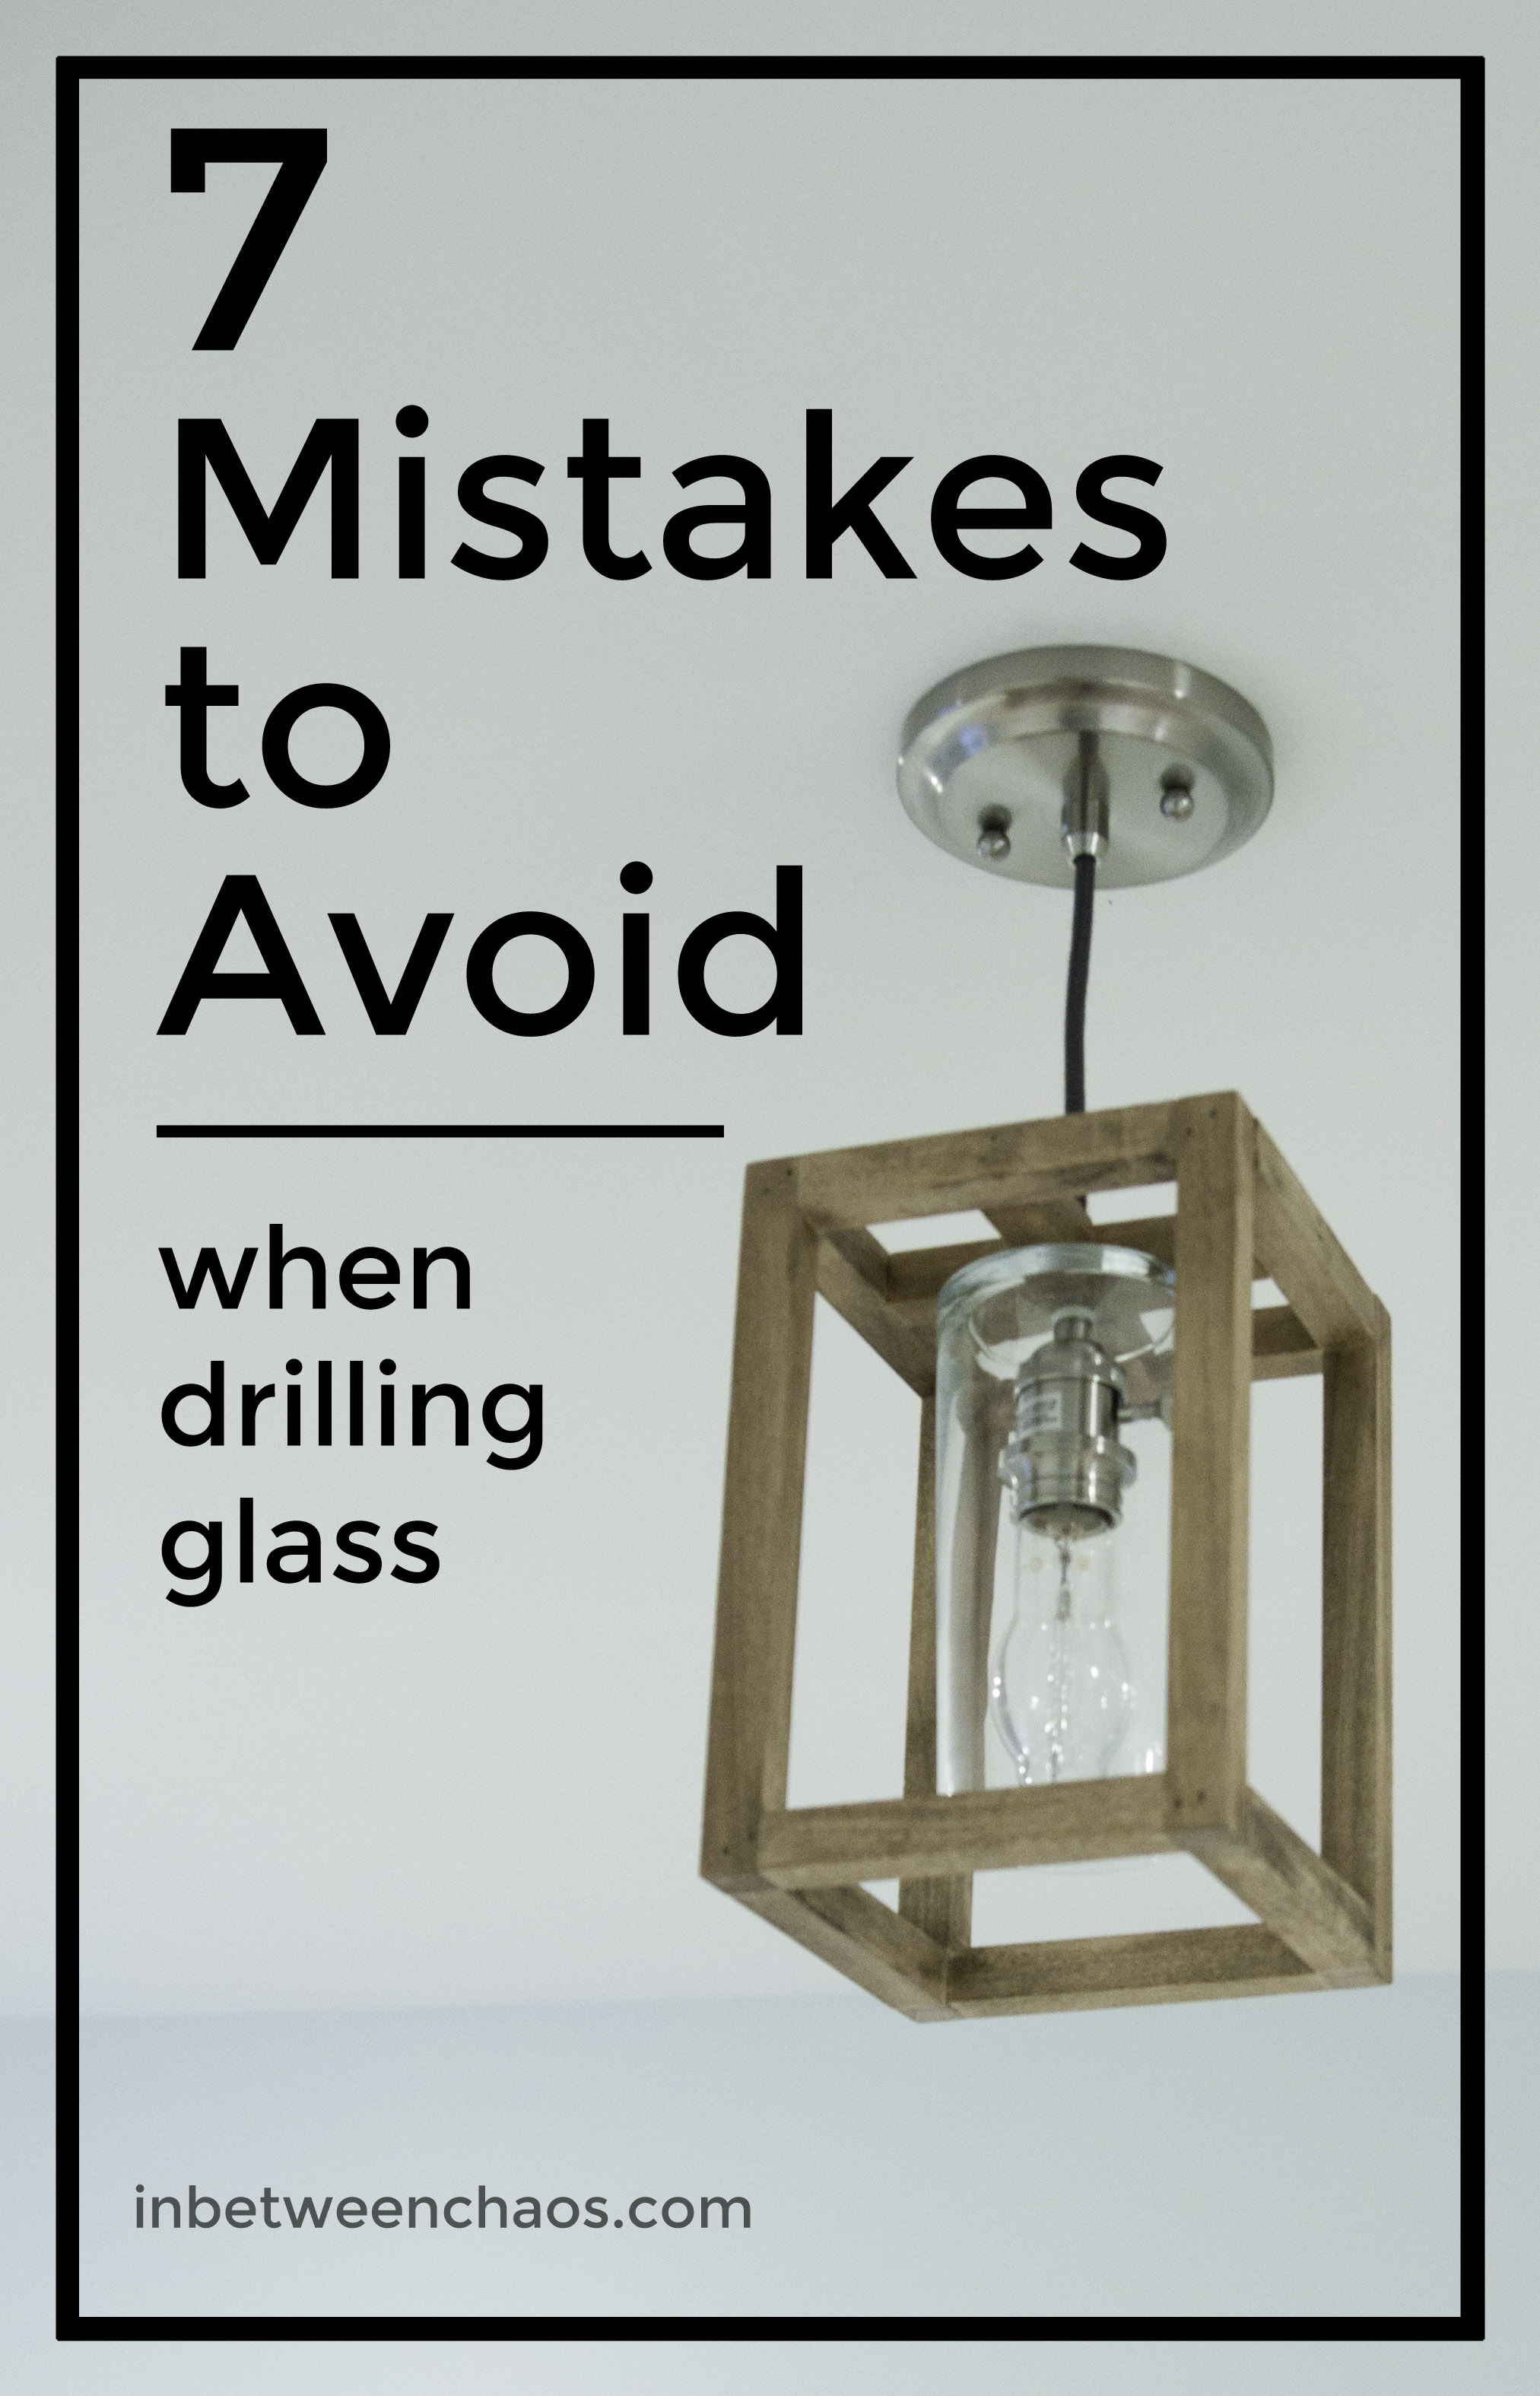 Glass Drilling Tips and Mistakes to Avoid | inbetweenchaos.com